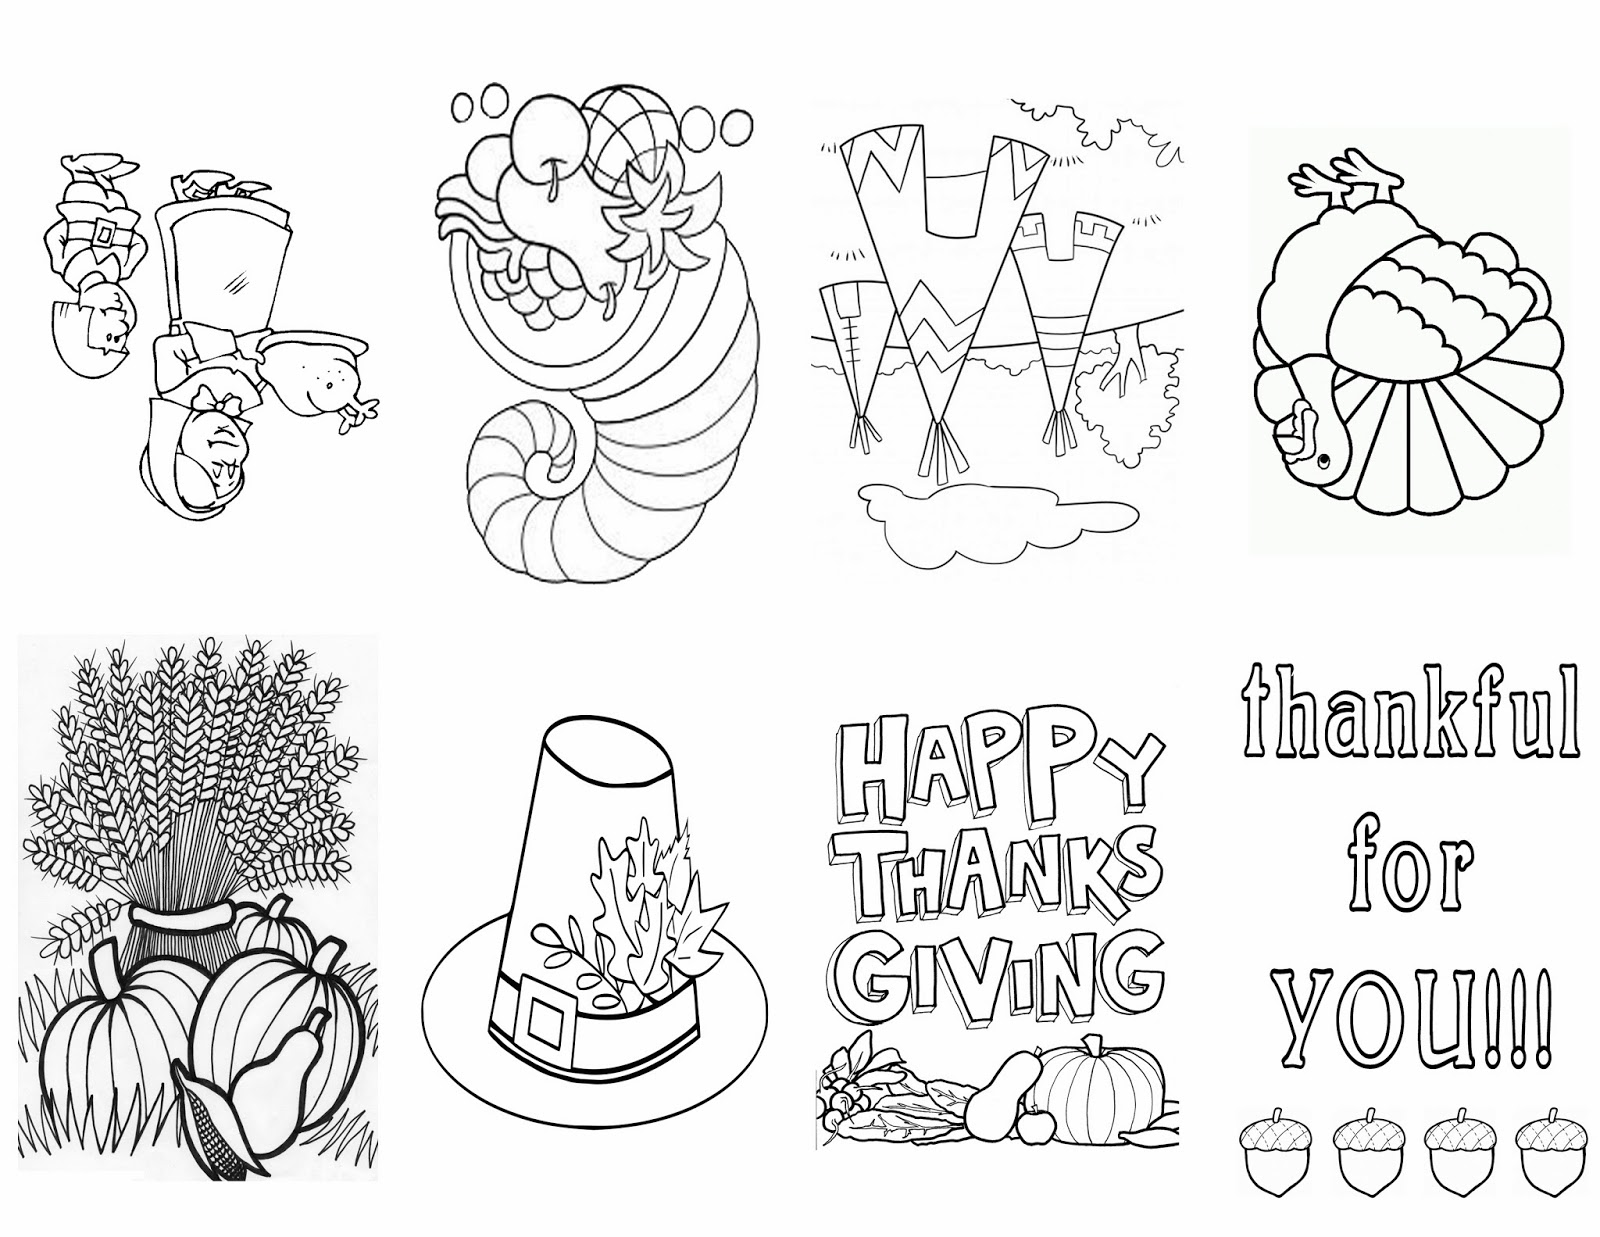 So I Created This Free Printable Just Click HERE Or The Image Below To Download It Is A Thanksgiving Themed Book For Your Child Color